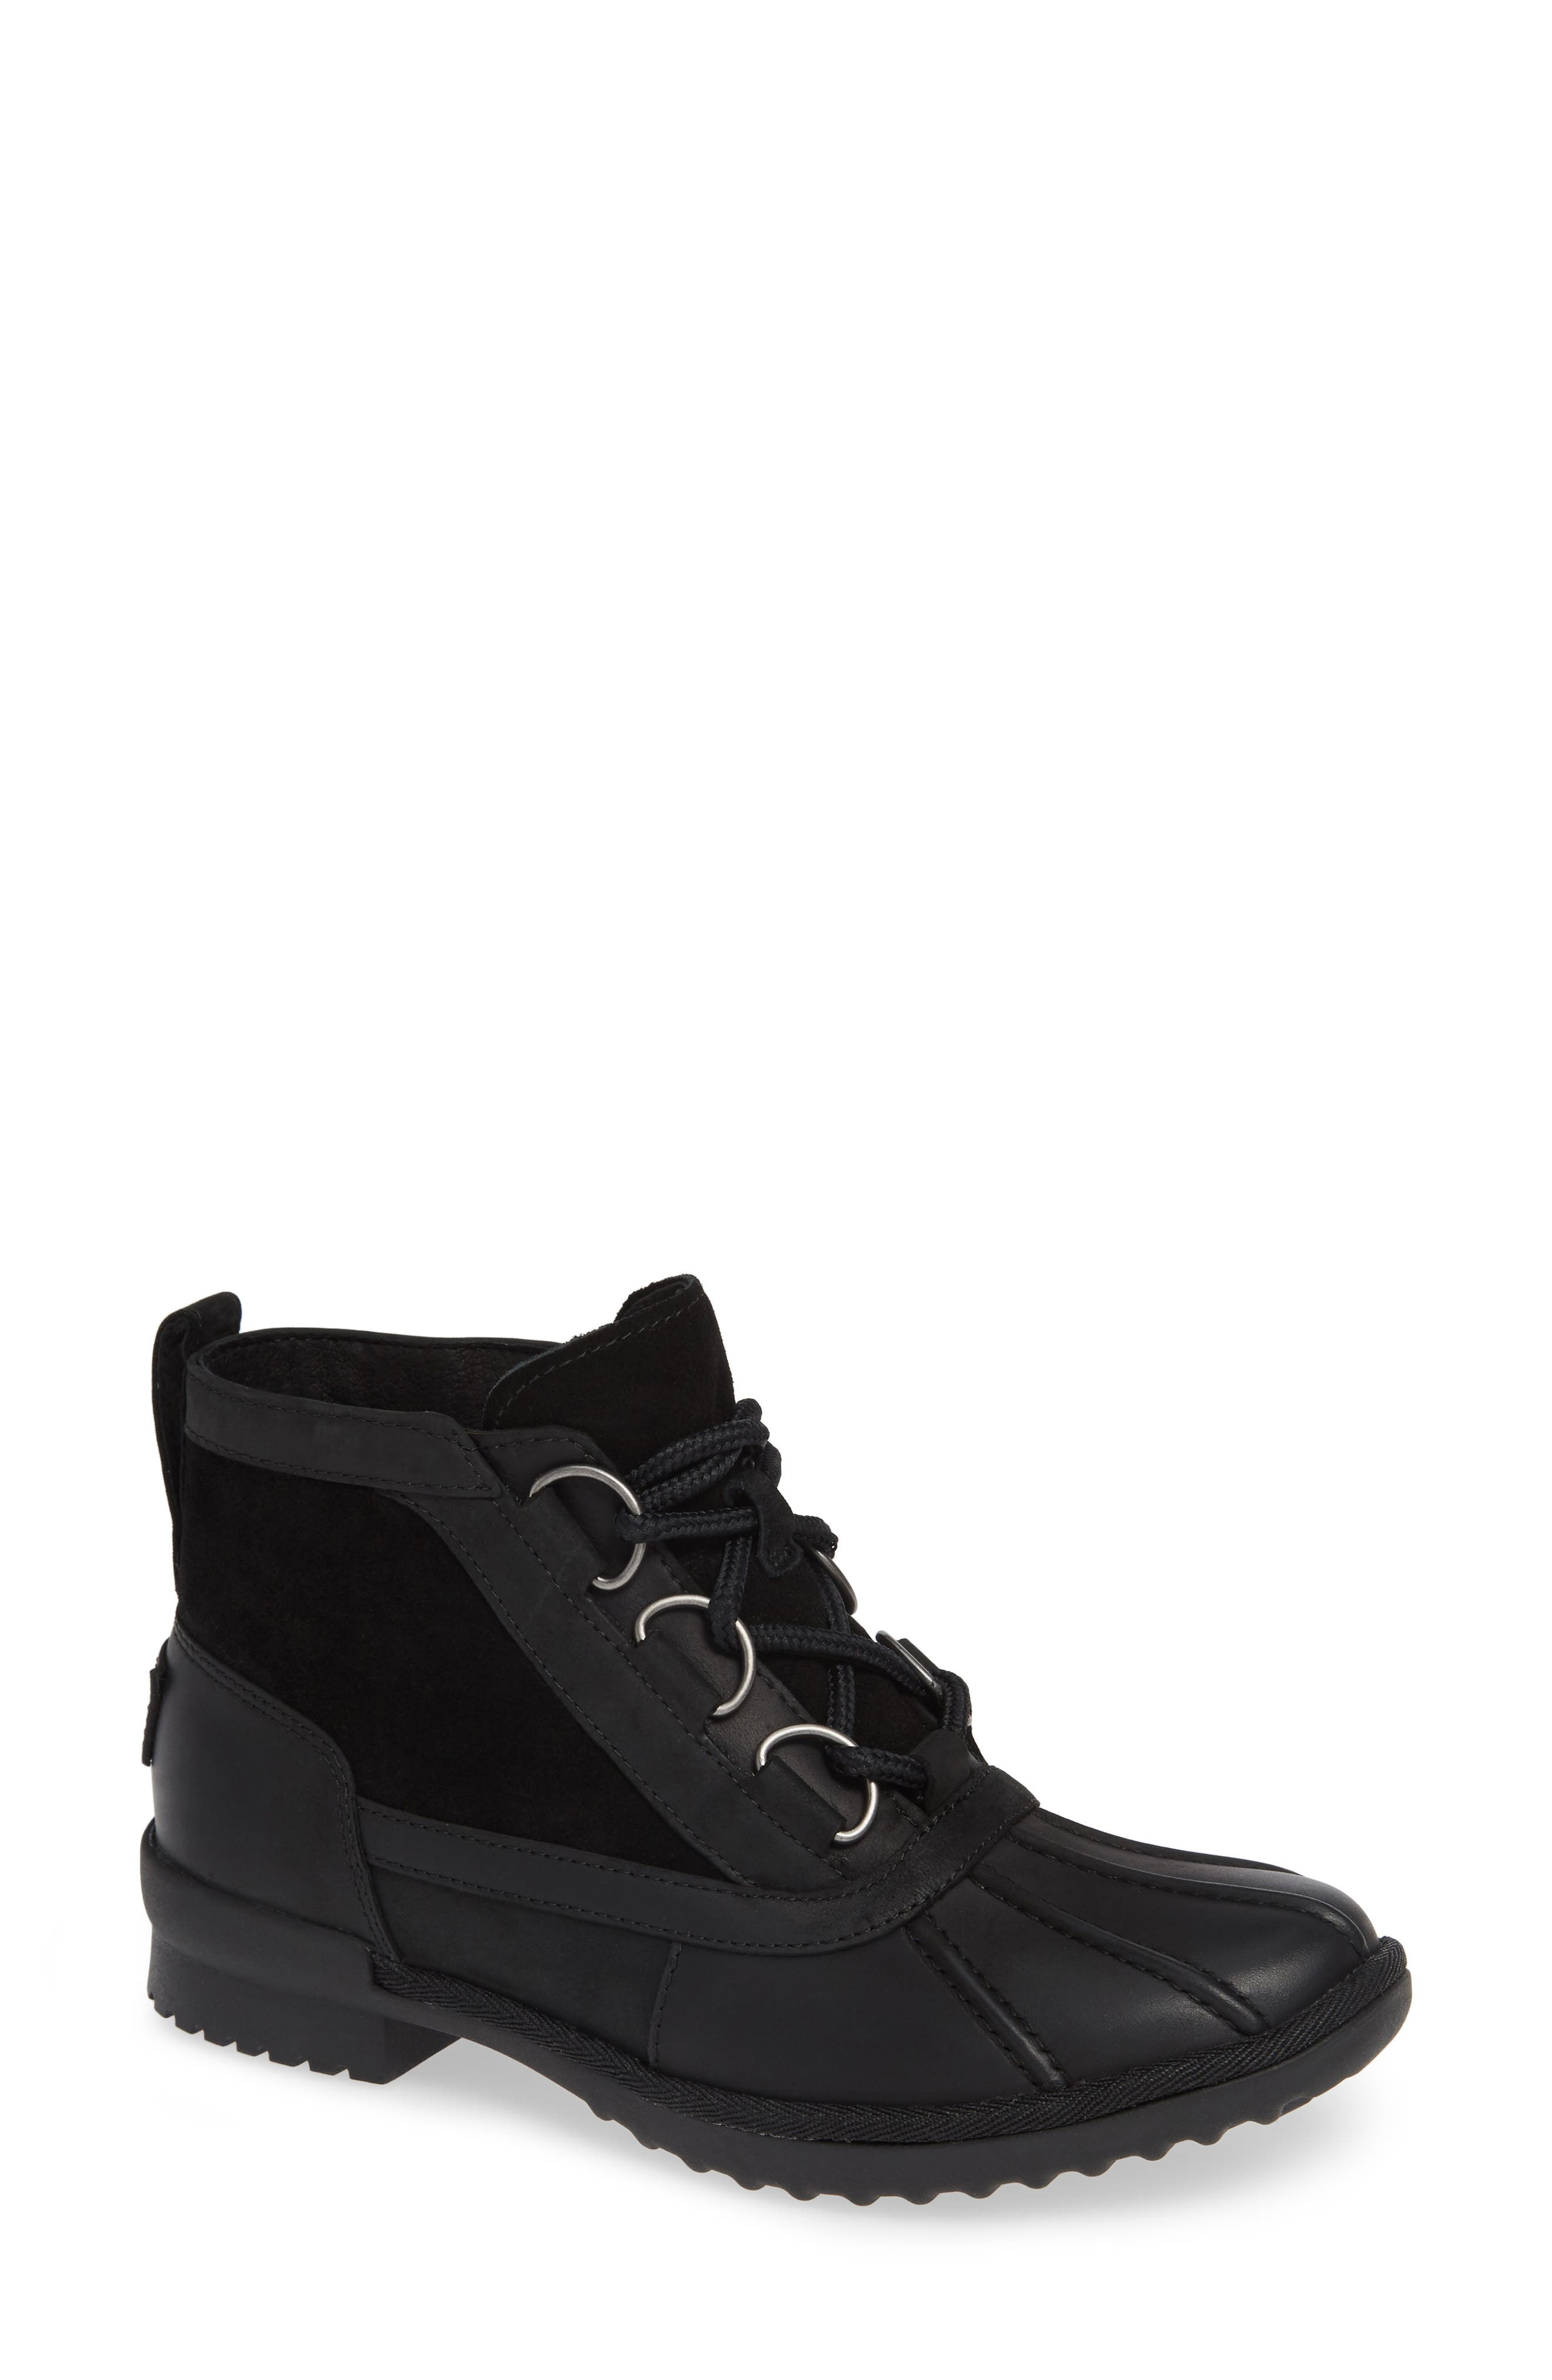 Heather Waterproof Lace-Up Bootie,                             Main thumbnail 1, color,                             BLACK LEATHER